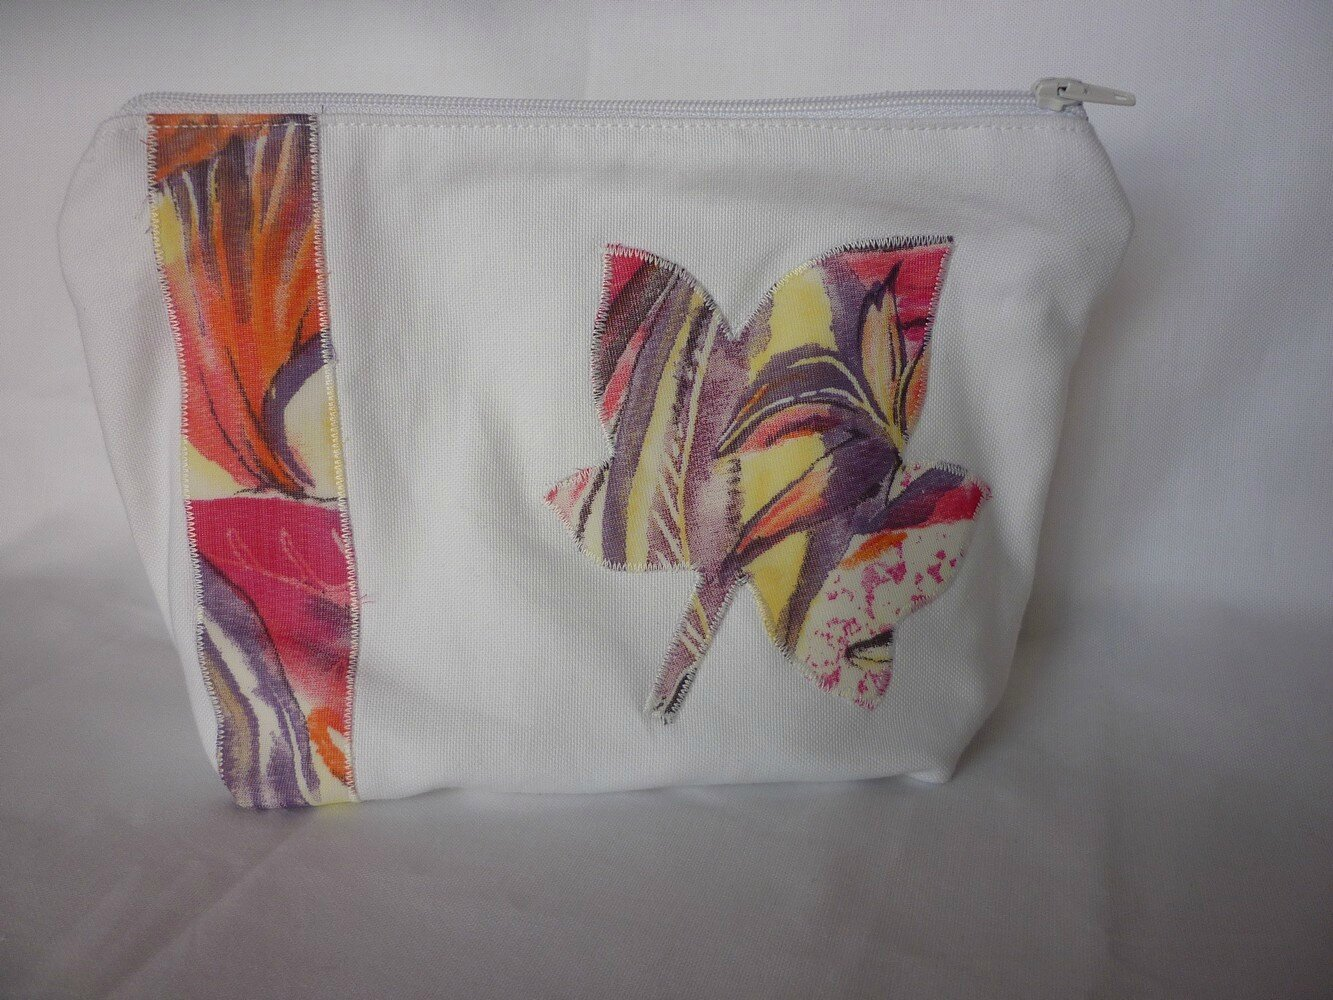 TROUSSE FEUILLE